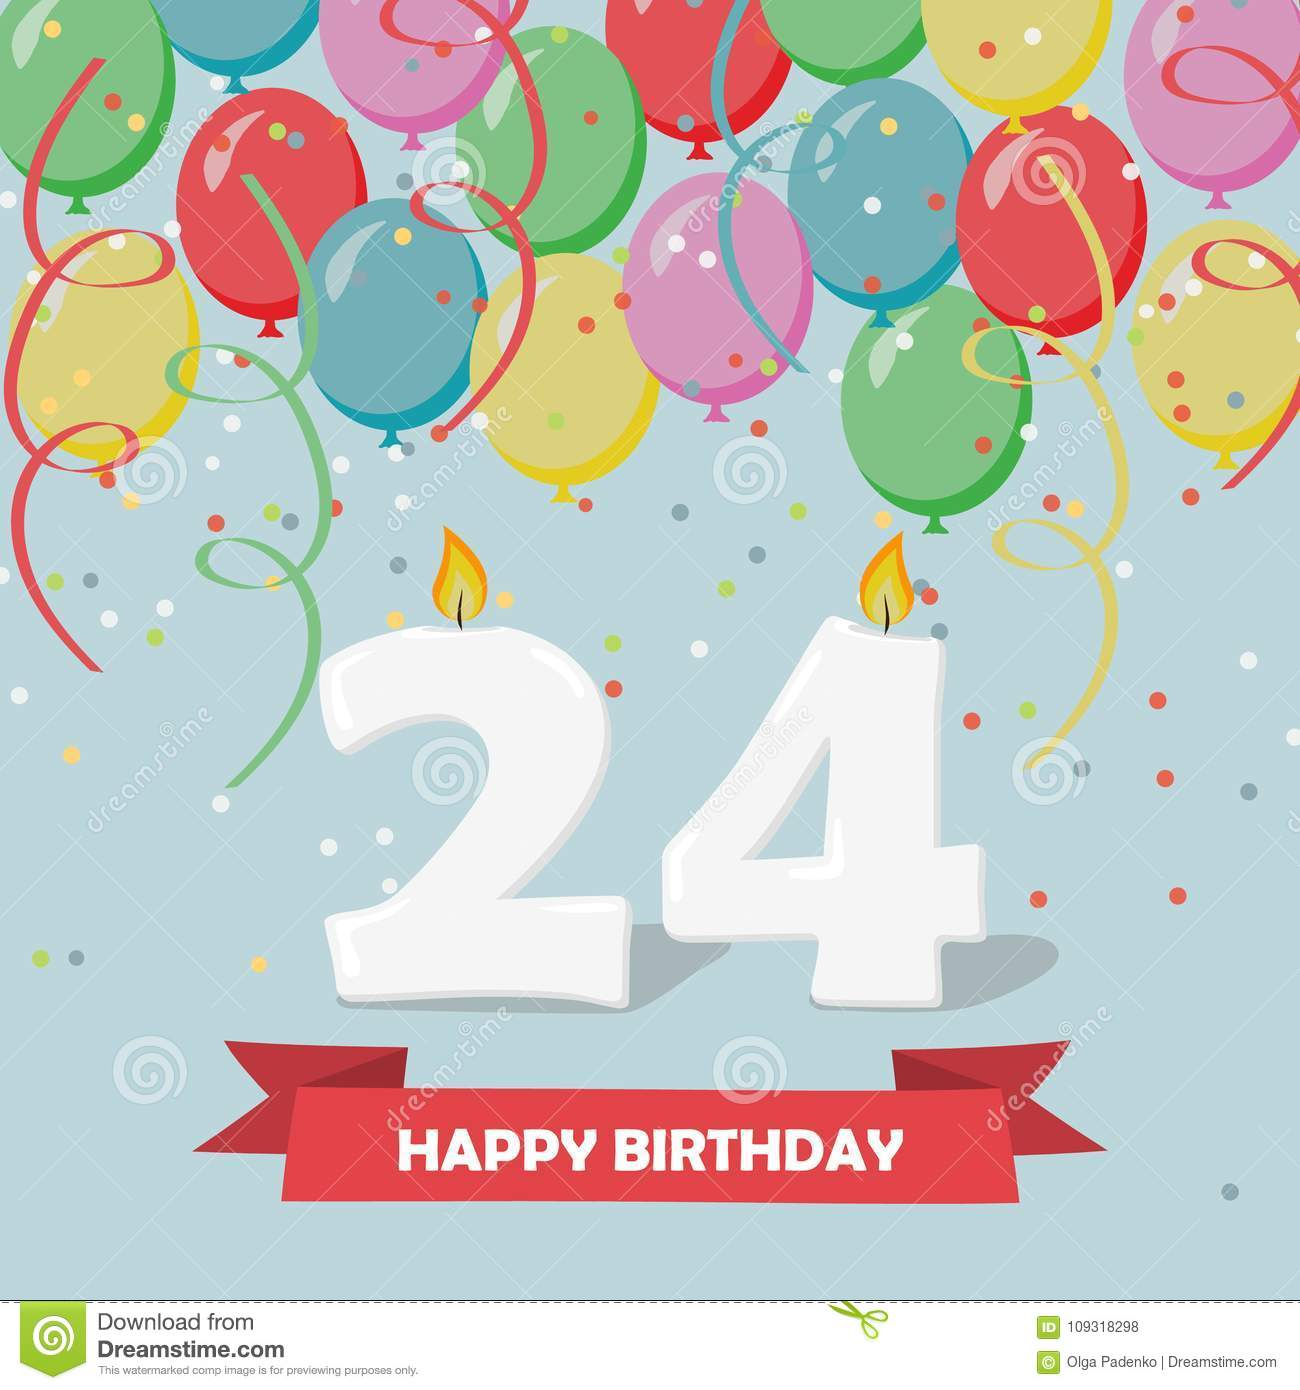 24 Years Celebration Happy Birthday Greeting Card With Candles Confetti And Balloons